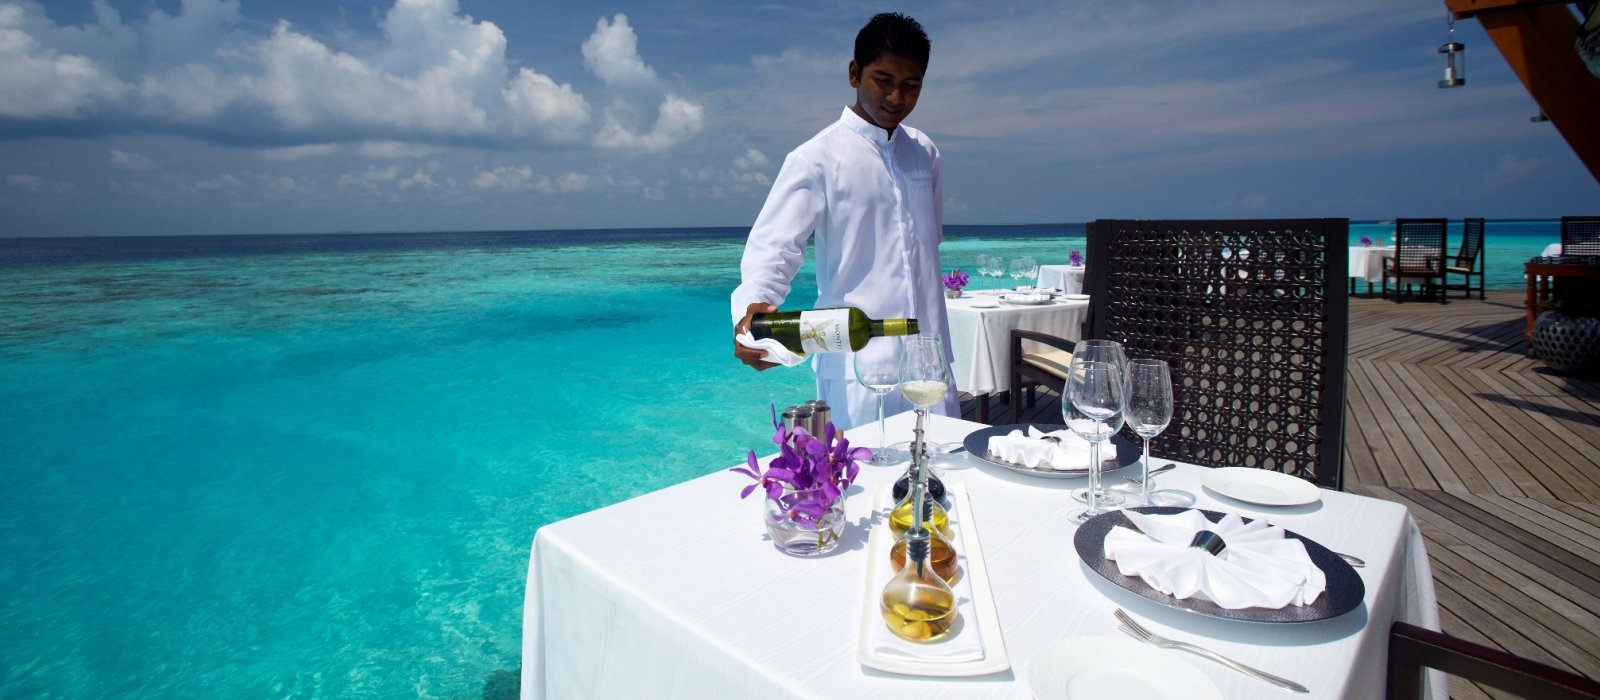 Lunch w hotelu Baros Maldives